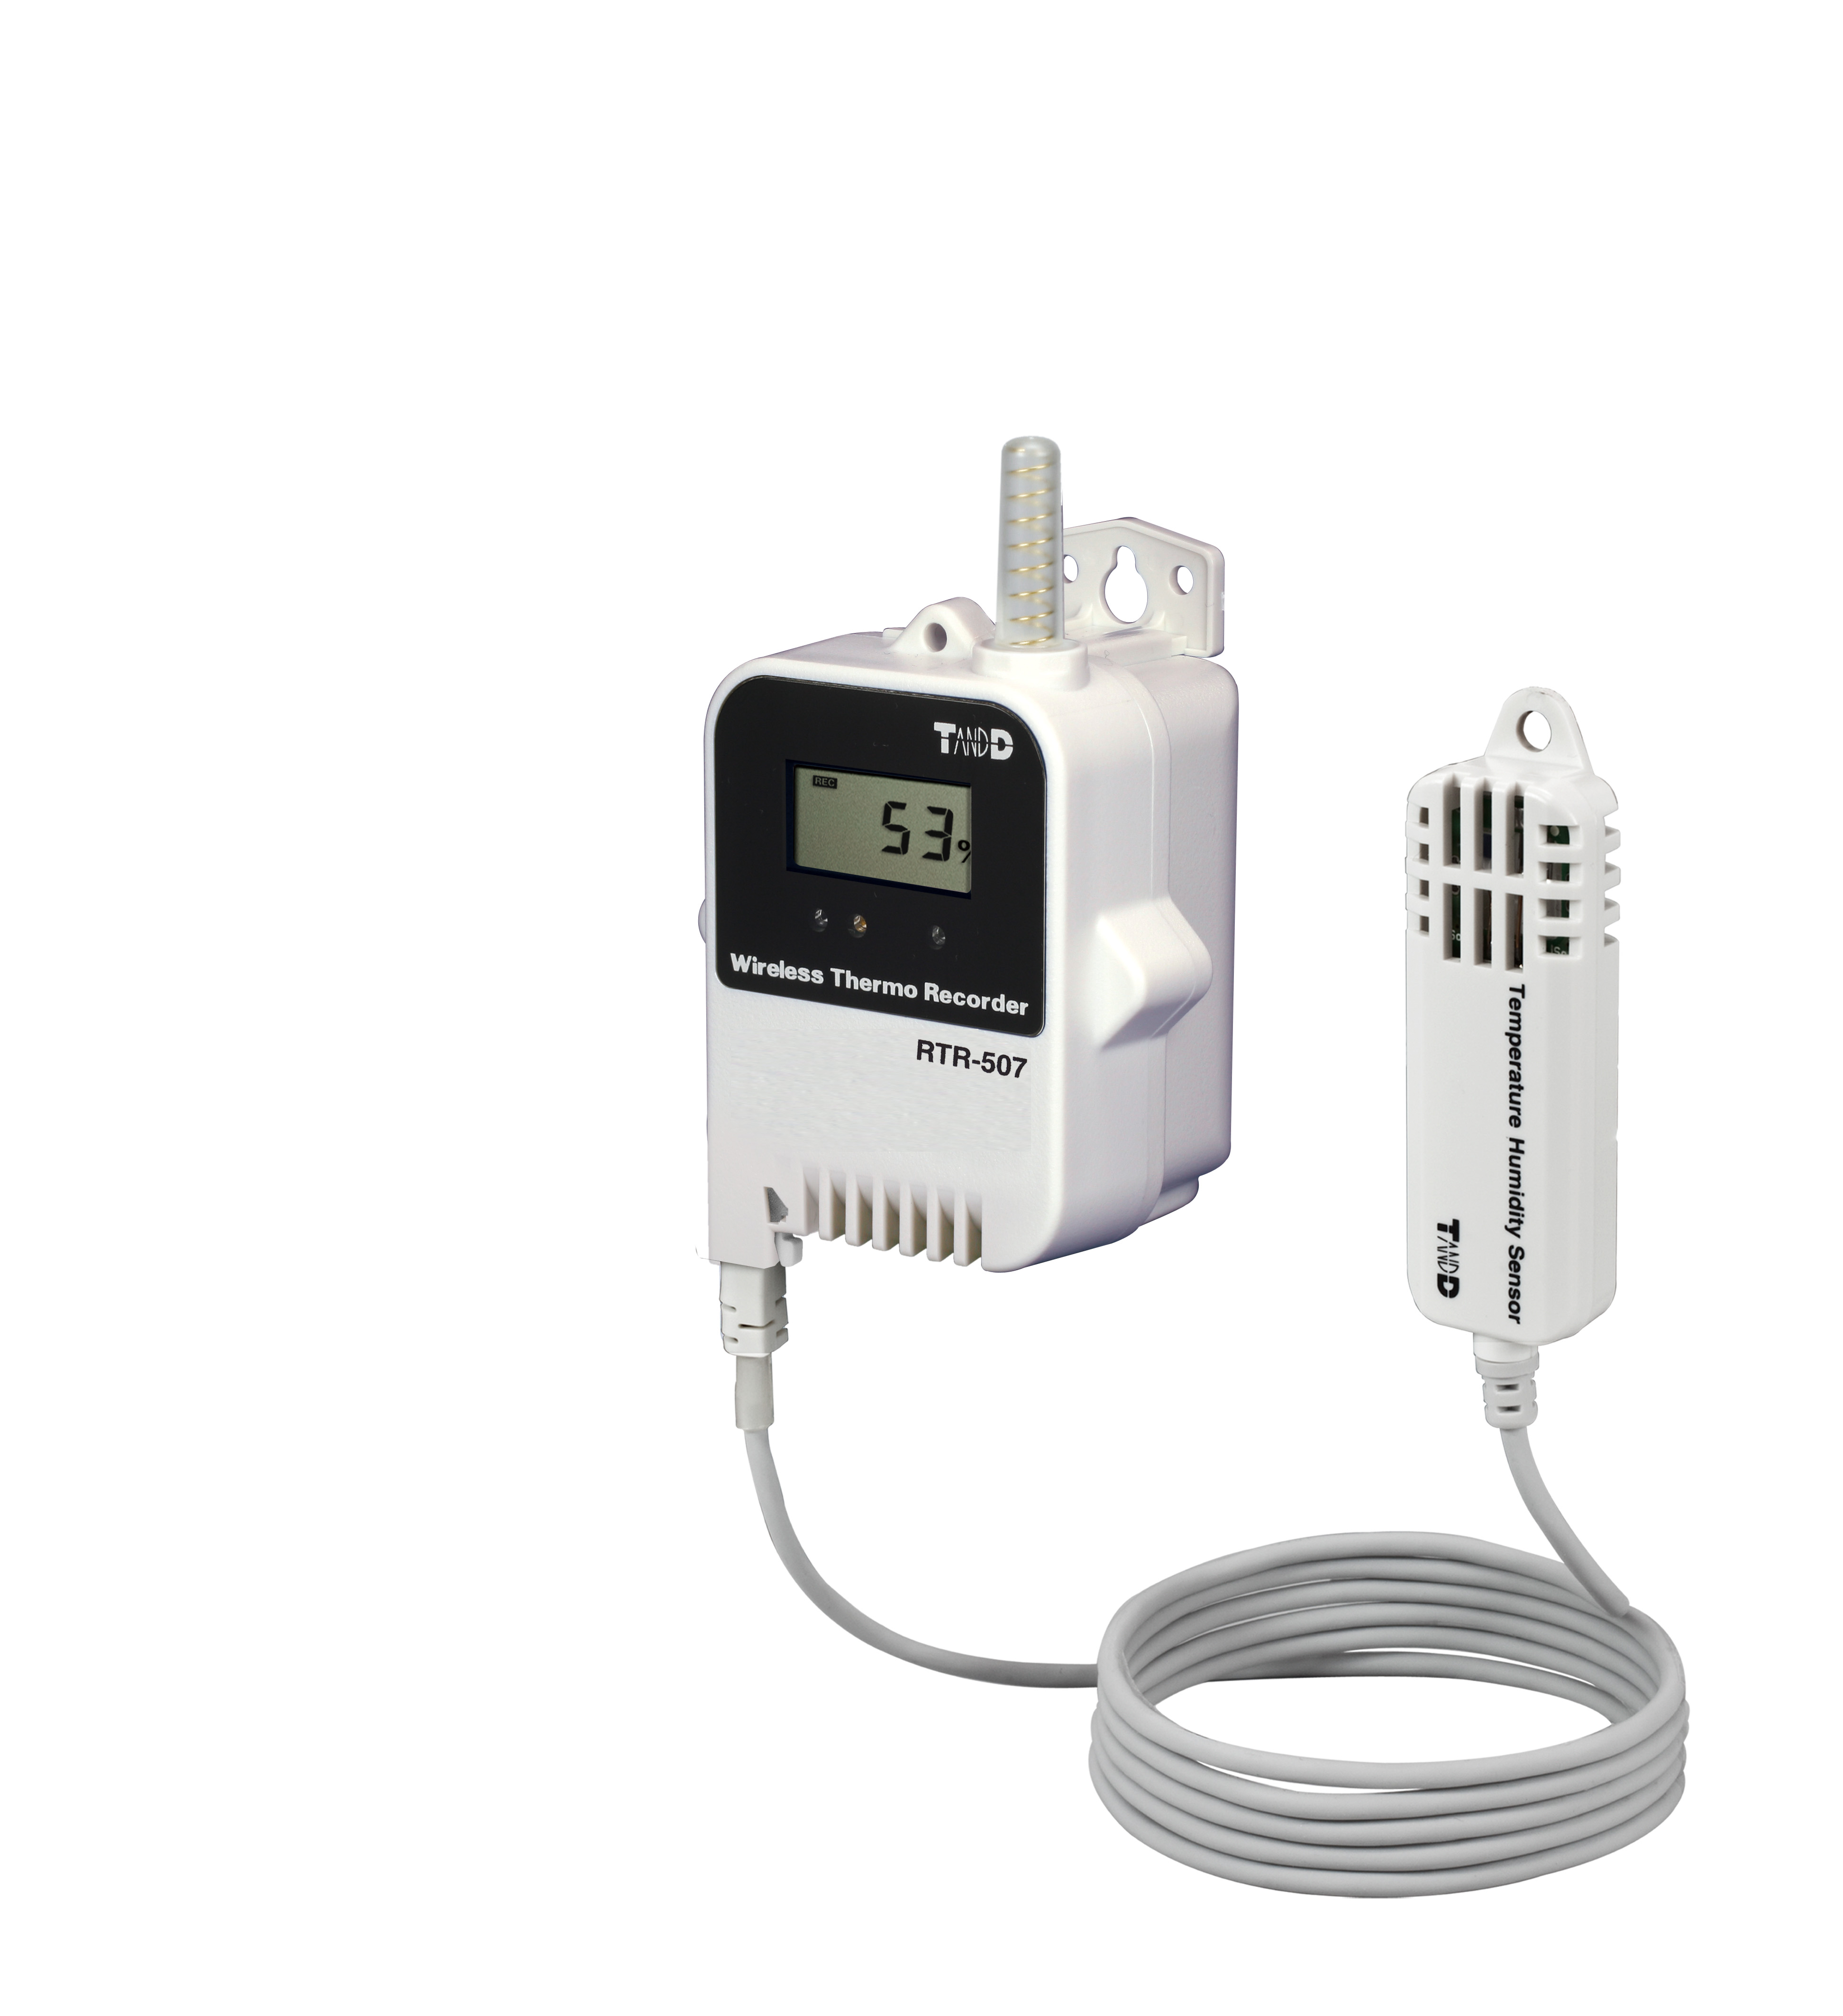 TADREC031: RTR-507L Wide Range Temperature and Humidity Data Logger with Long Life Battery